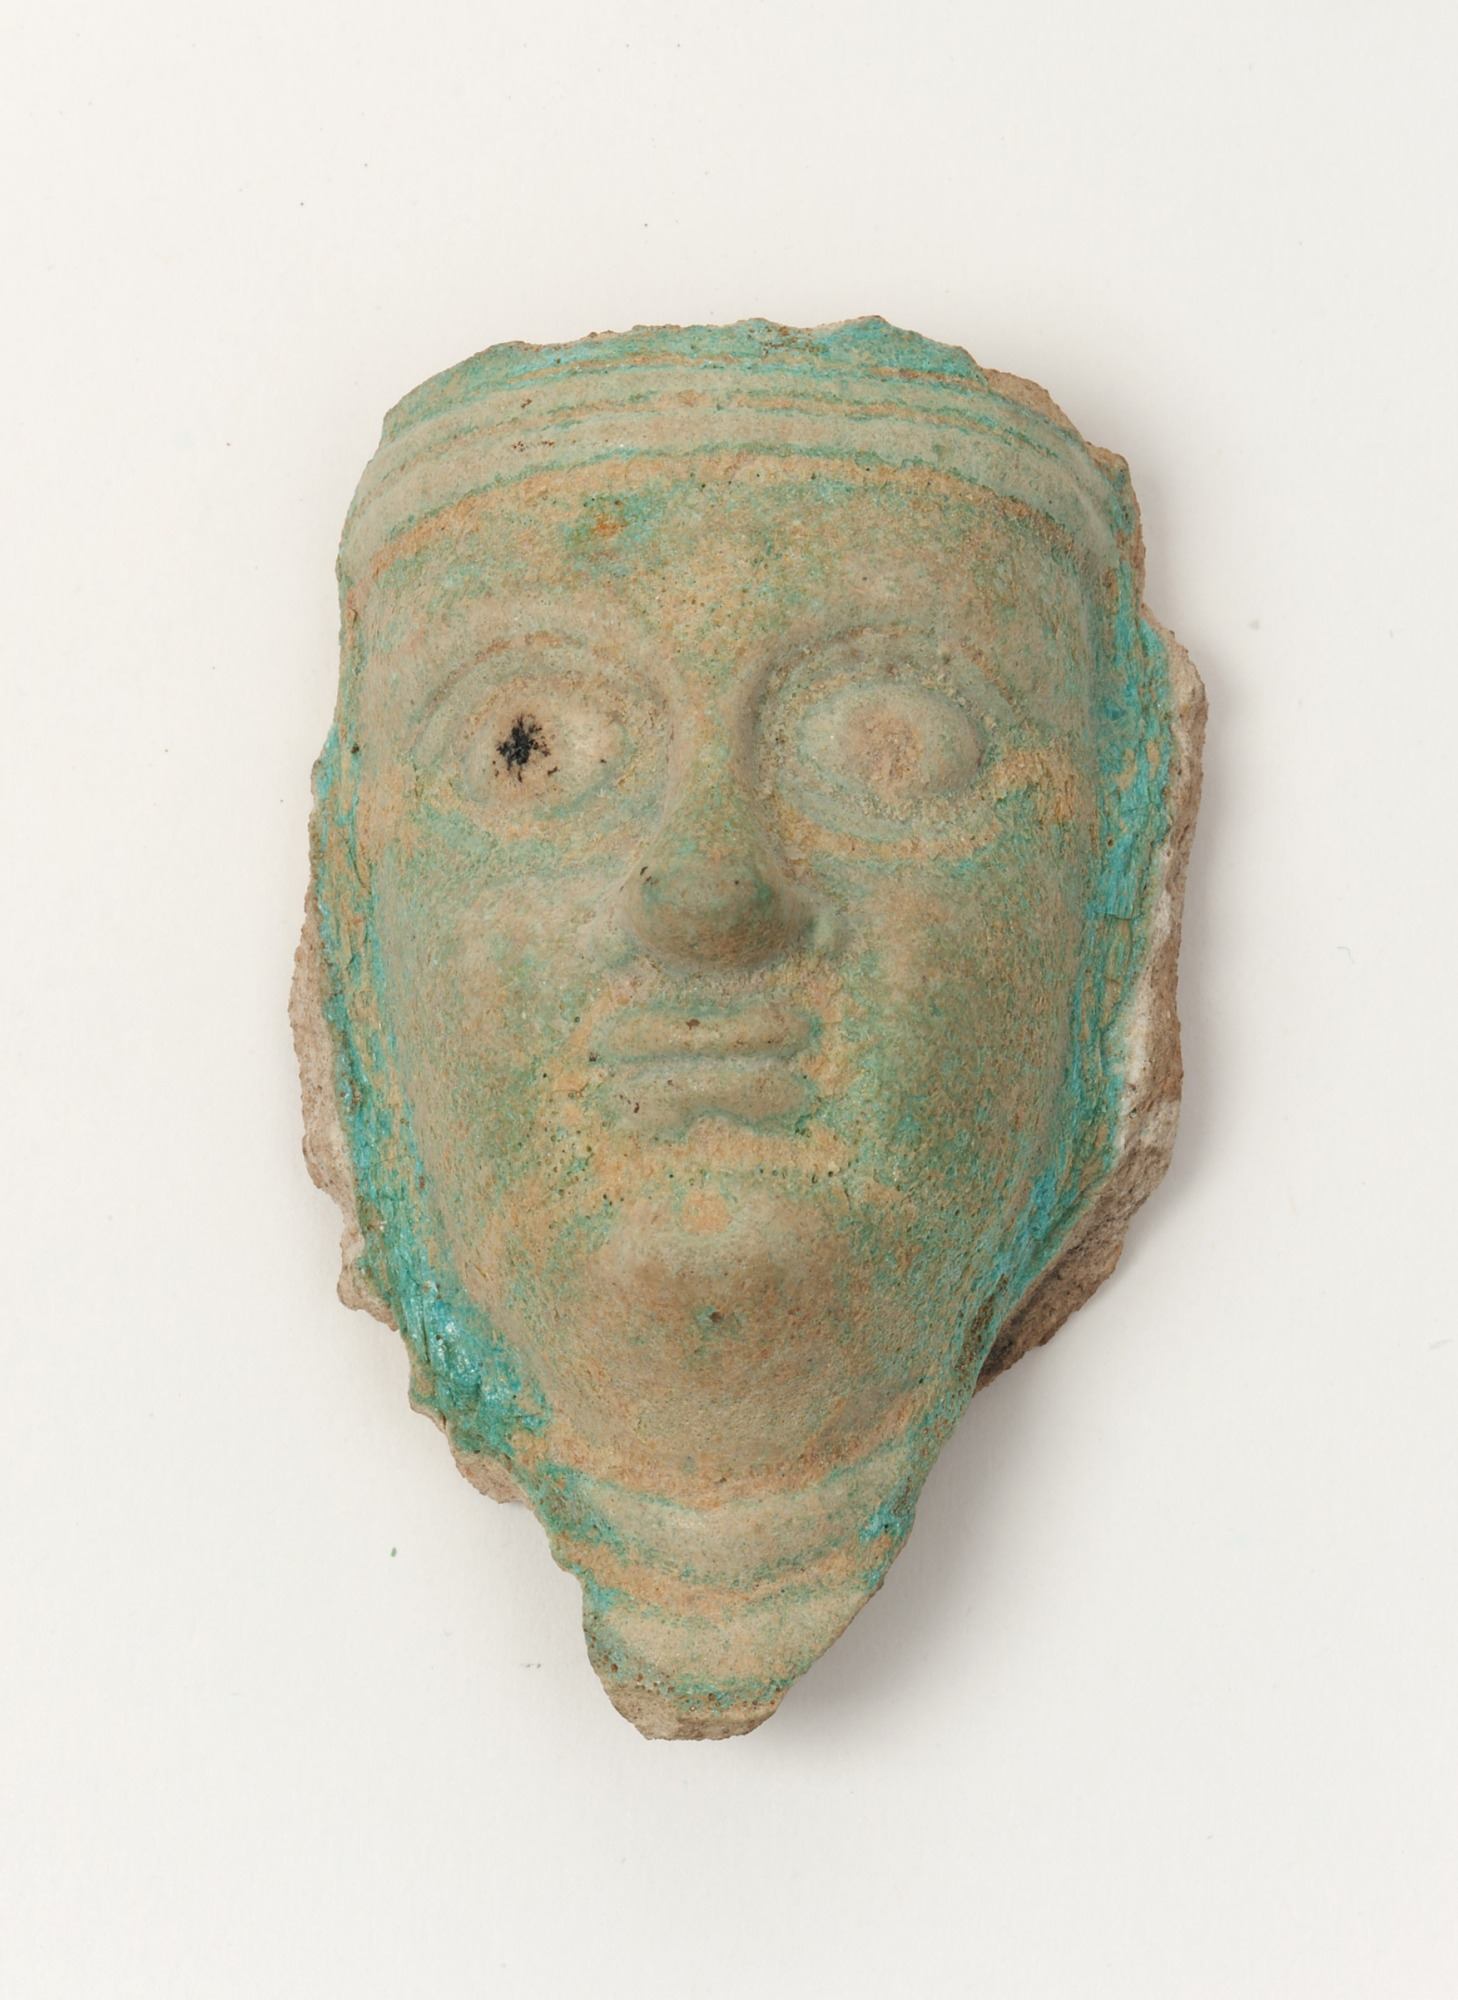 Fragment of a mask of a human face